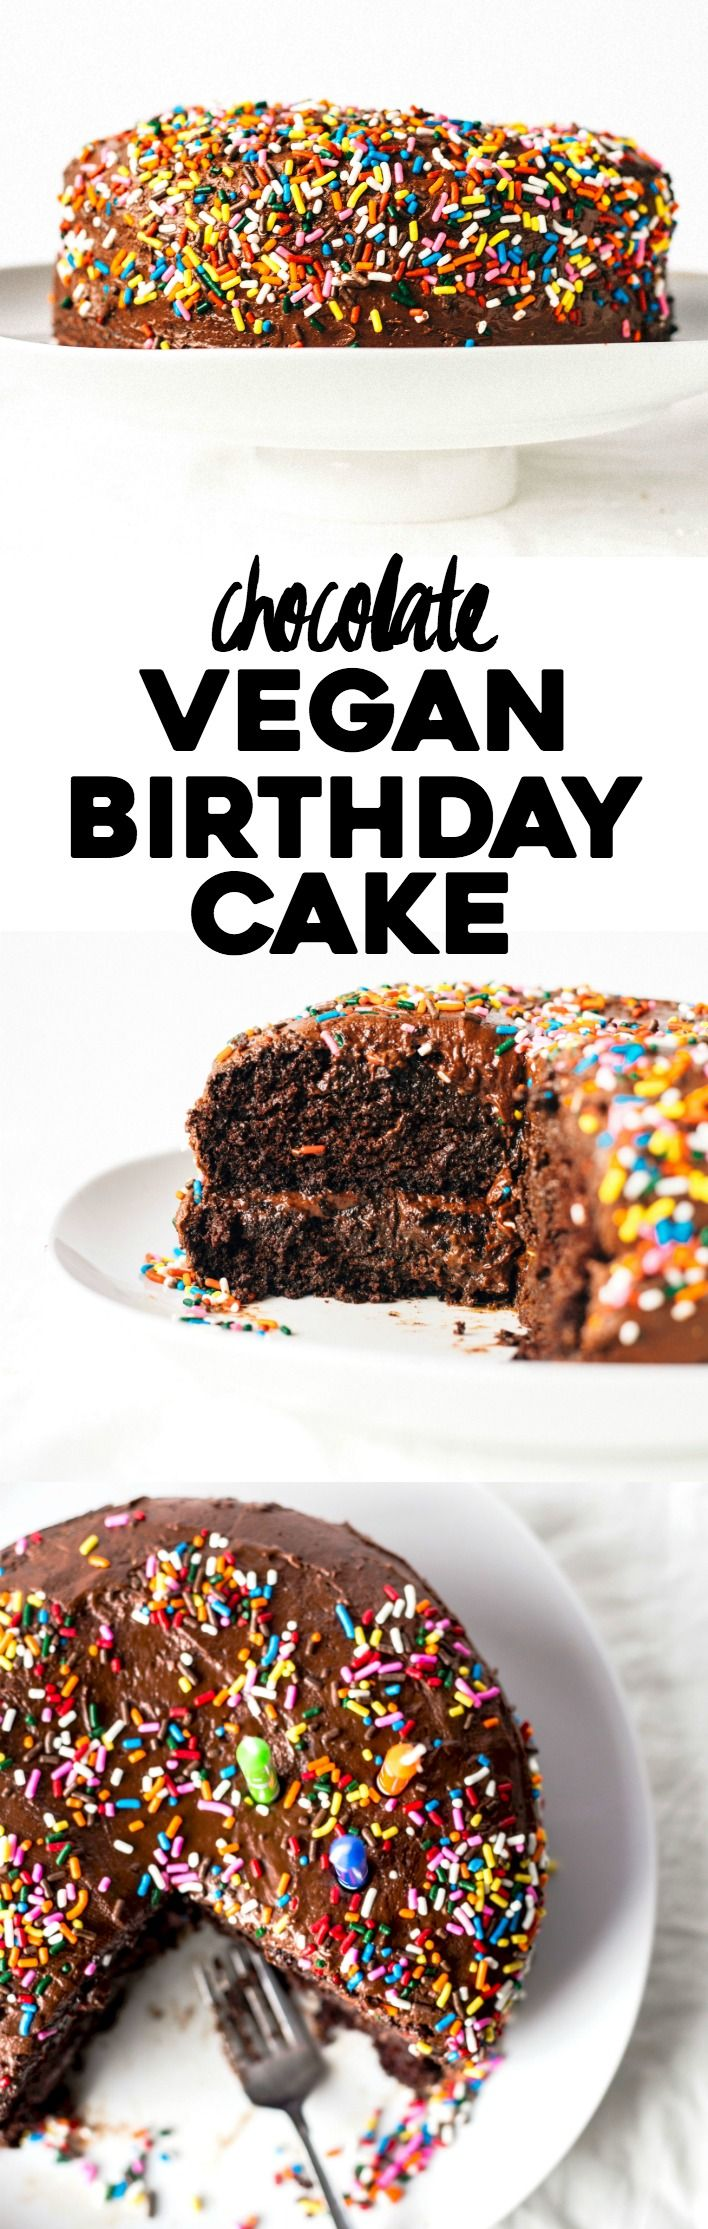 Chocolate Vegan Birthday Cake Recipe Birthdays Cakes